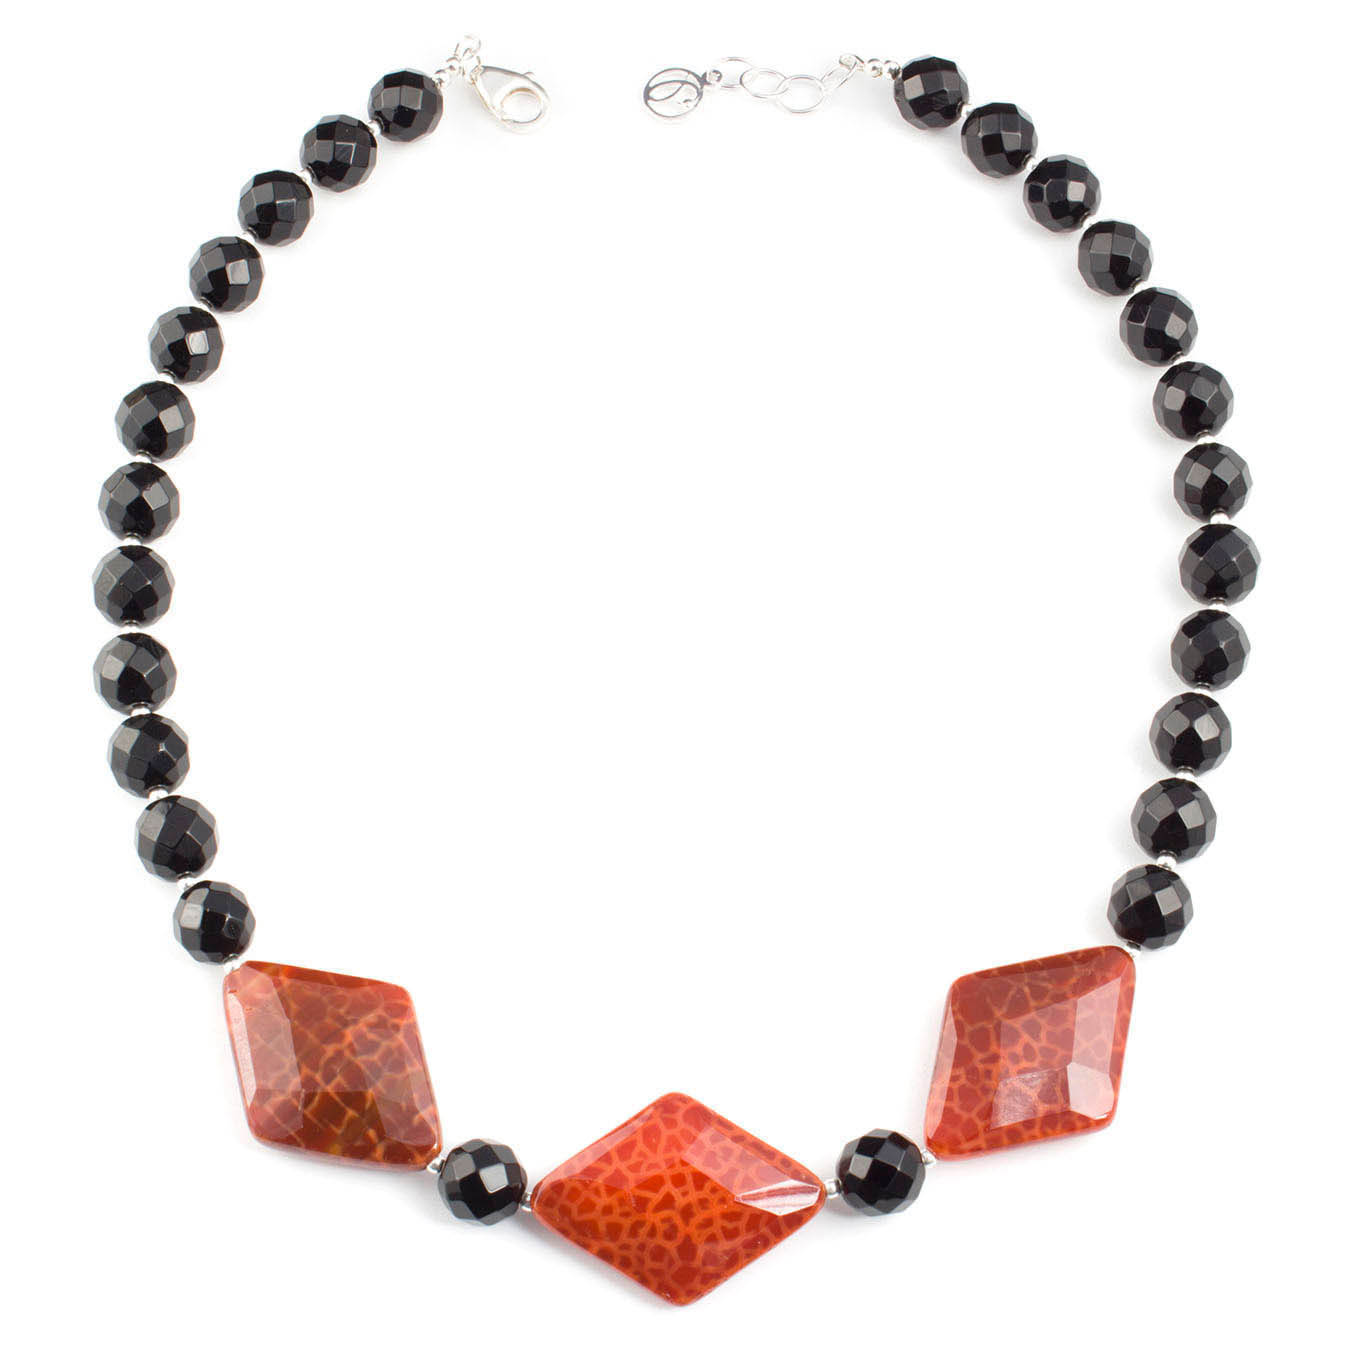 Beaded jewelry collar necklace made with black and red fire agate